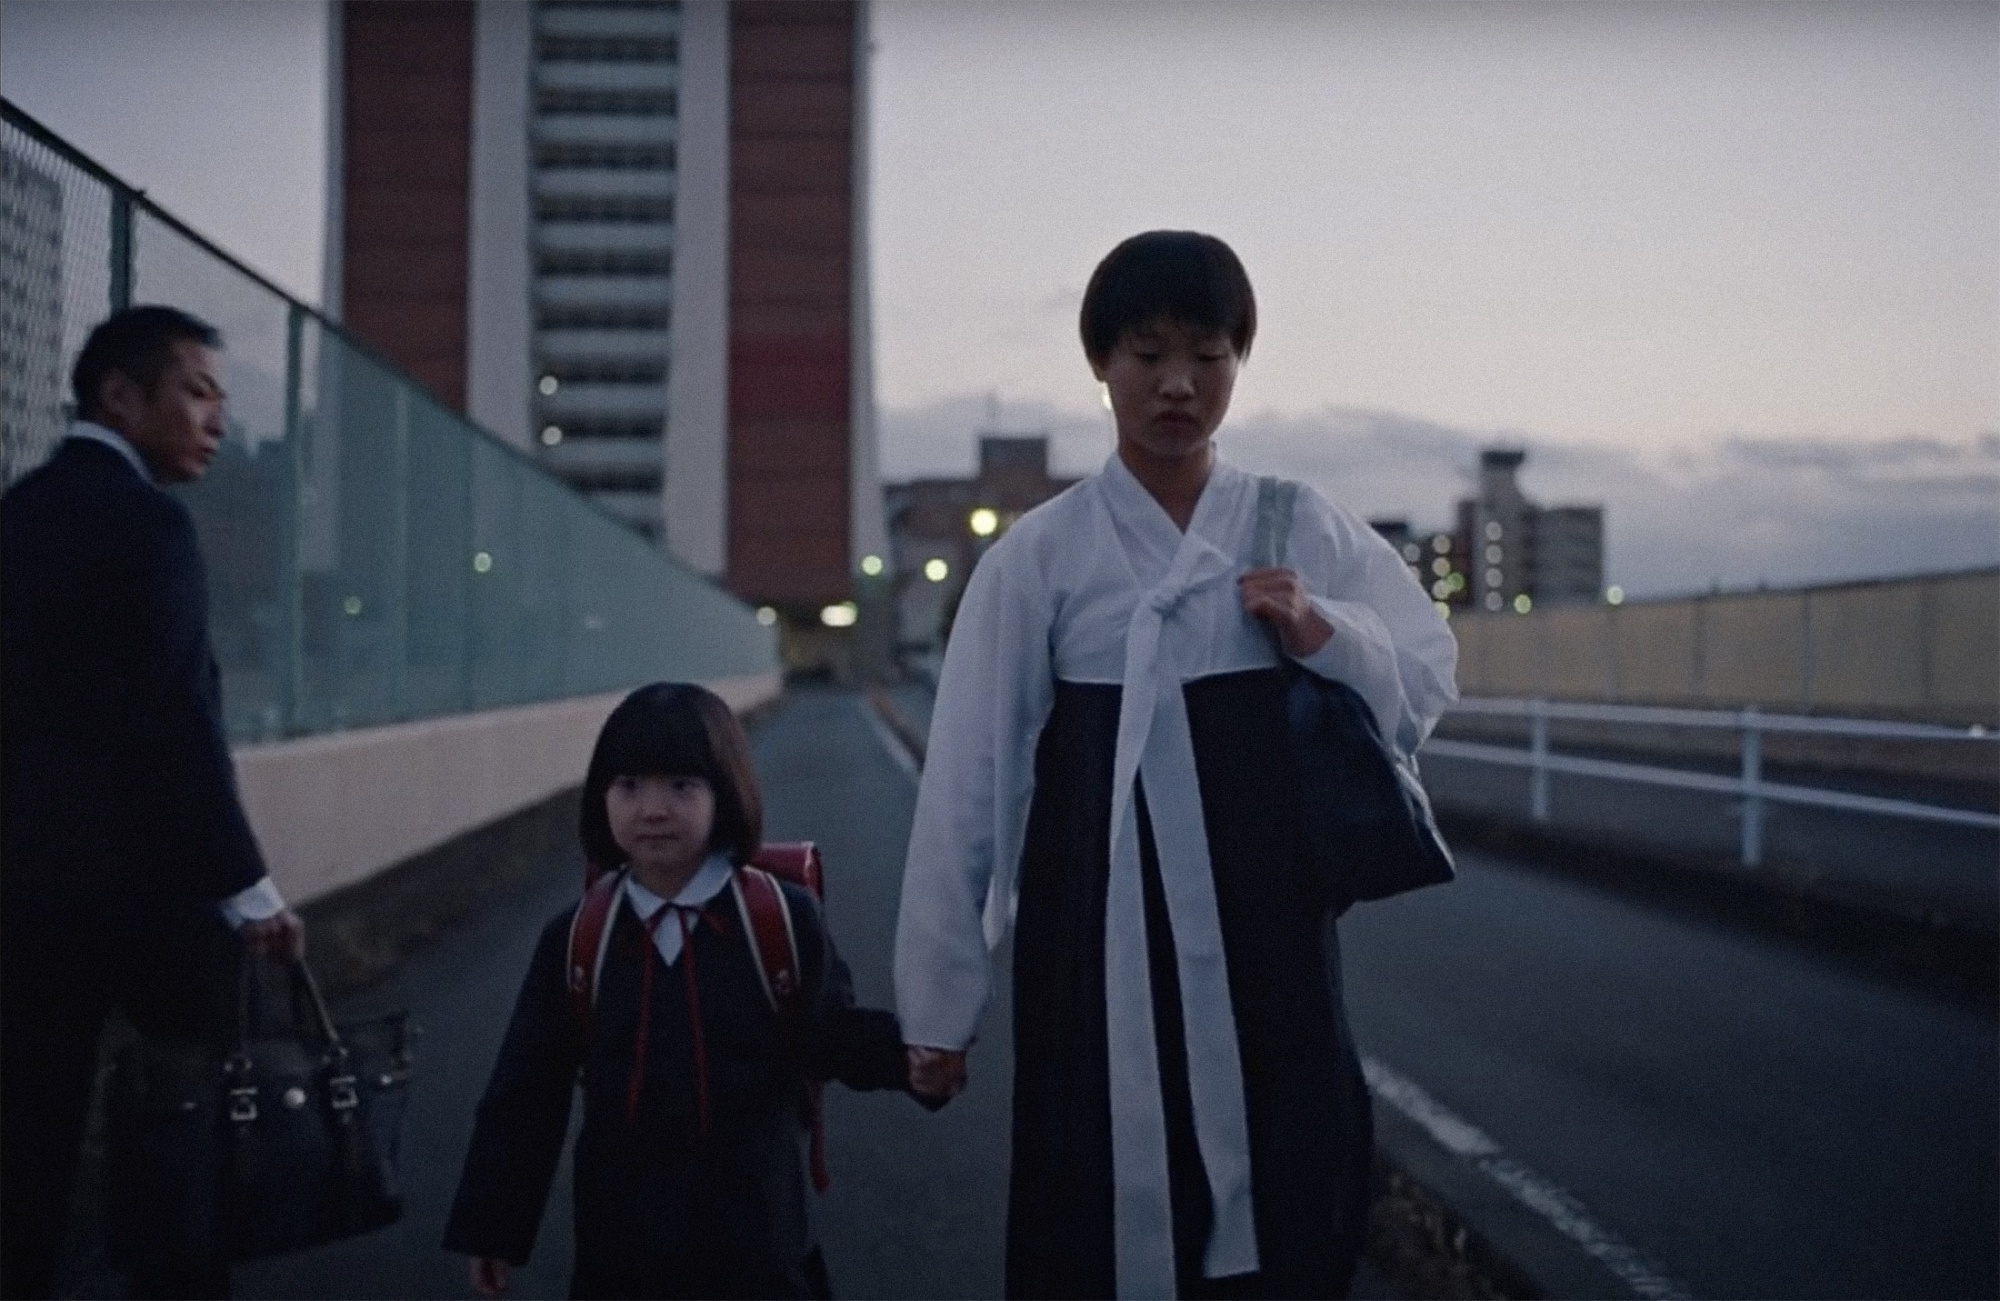 Nike Nke Brings Social Justice Ads To Japan The Results Are Mixed Bloomberg